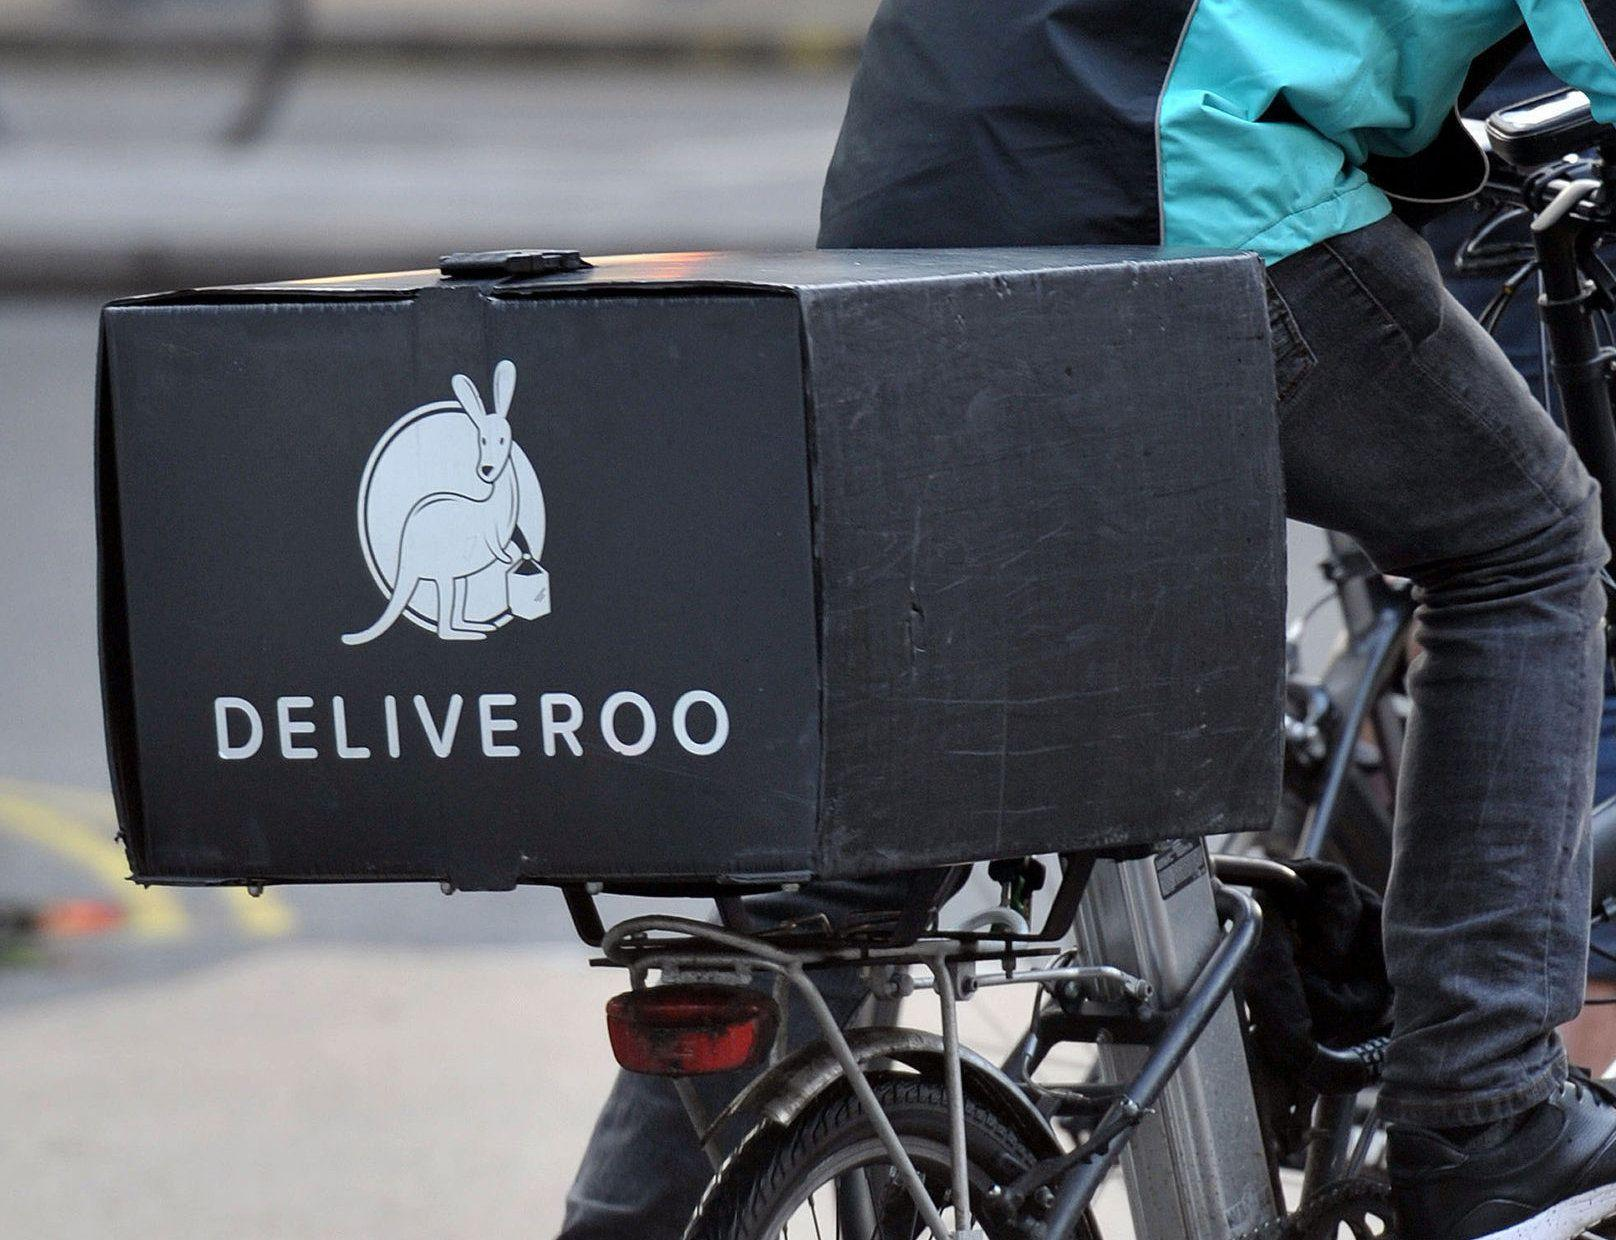 Amazon leads £450m investment in Deliveroo